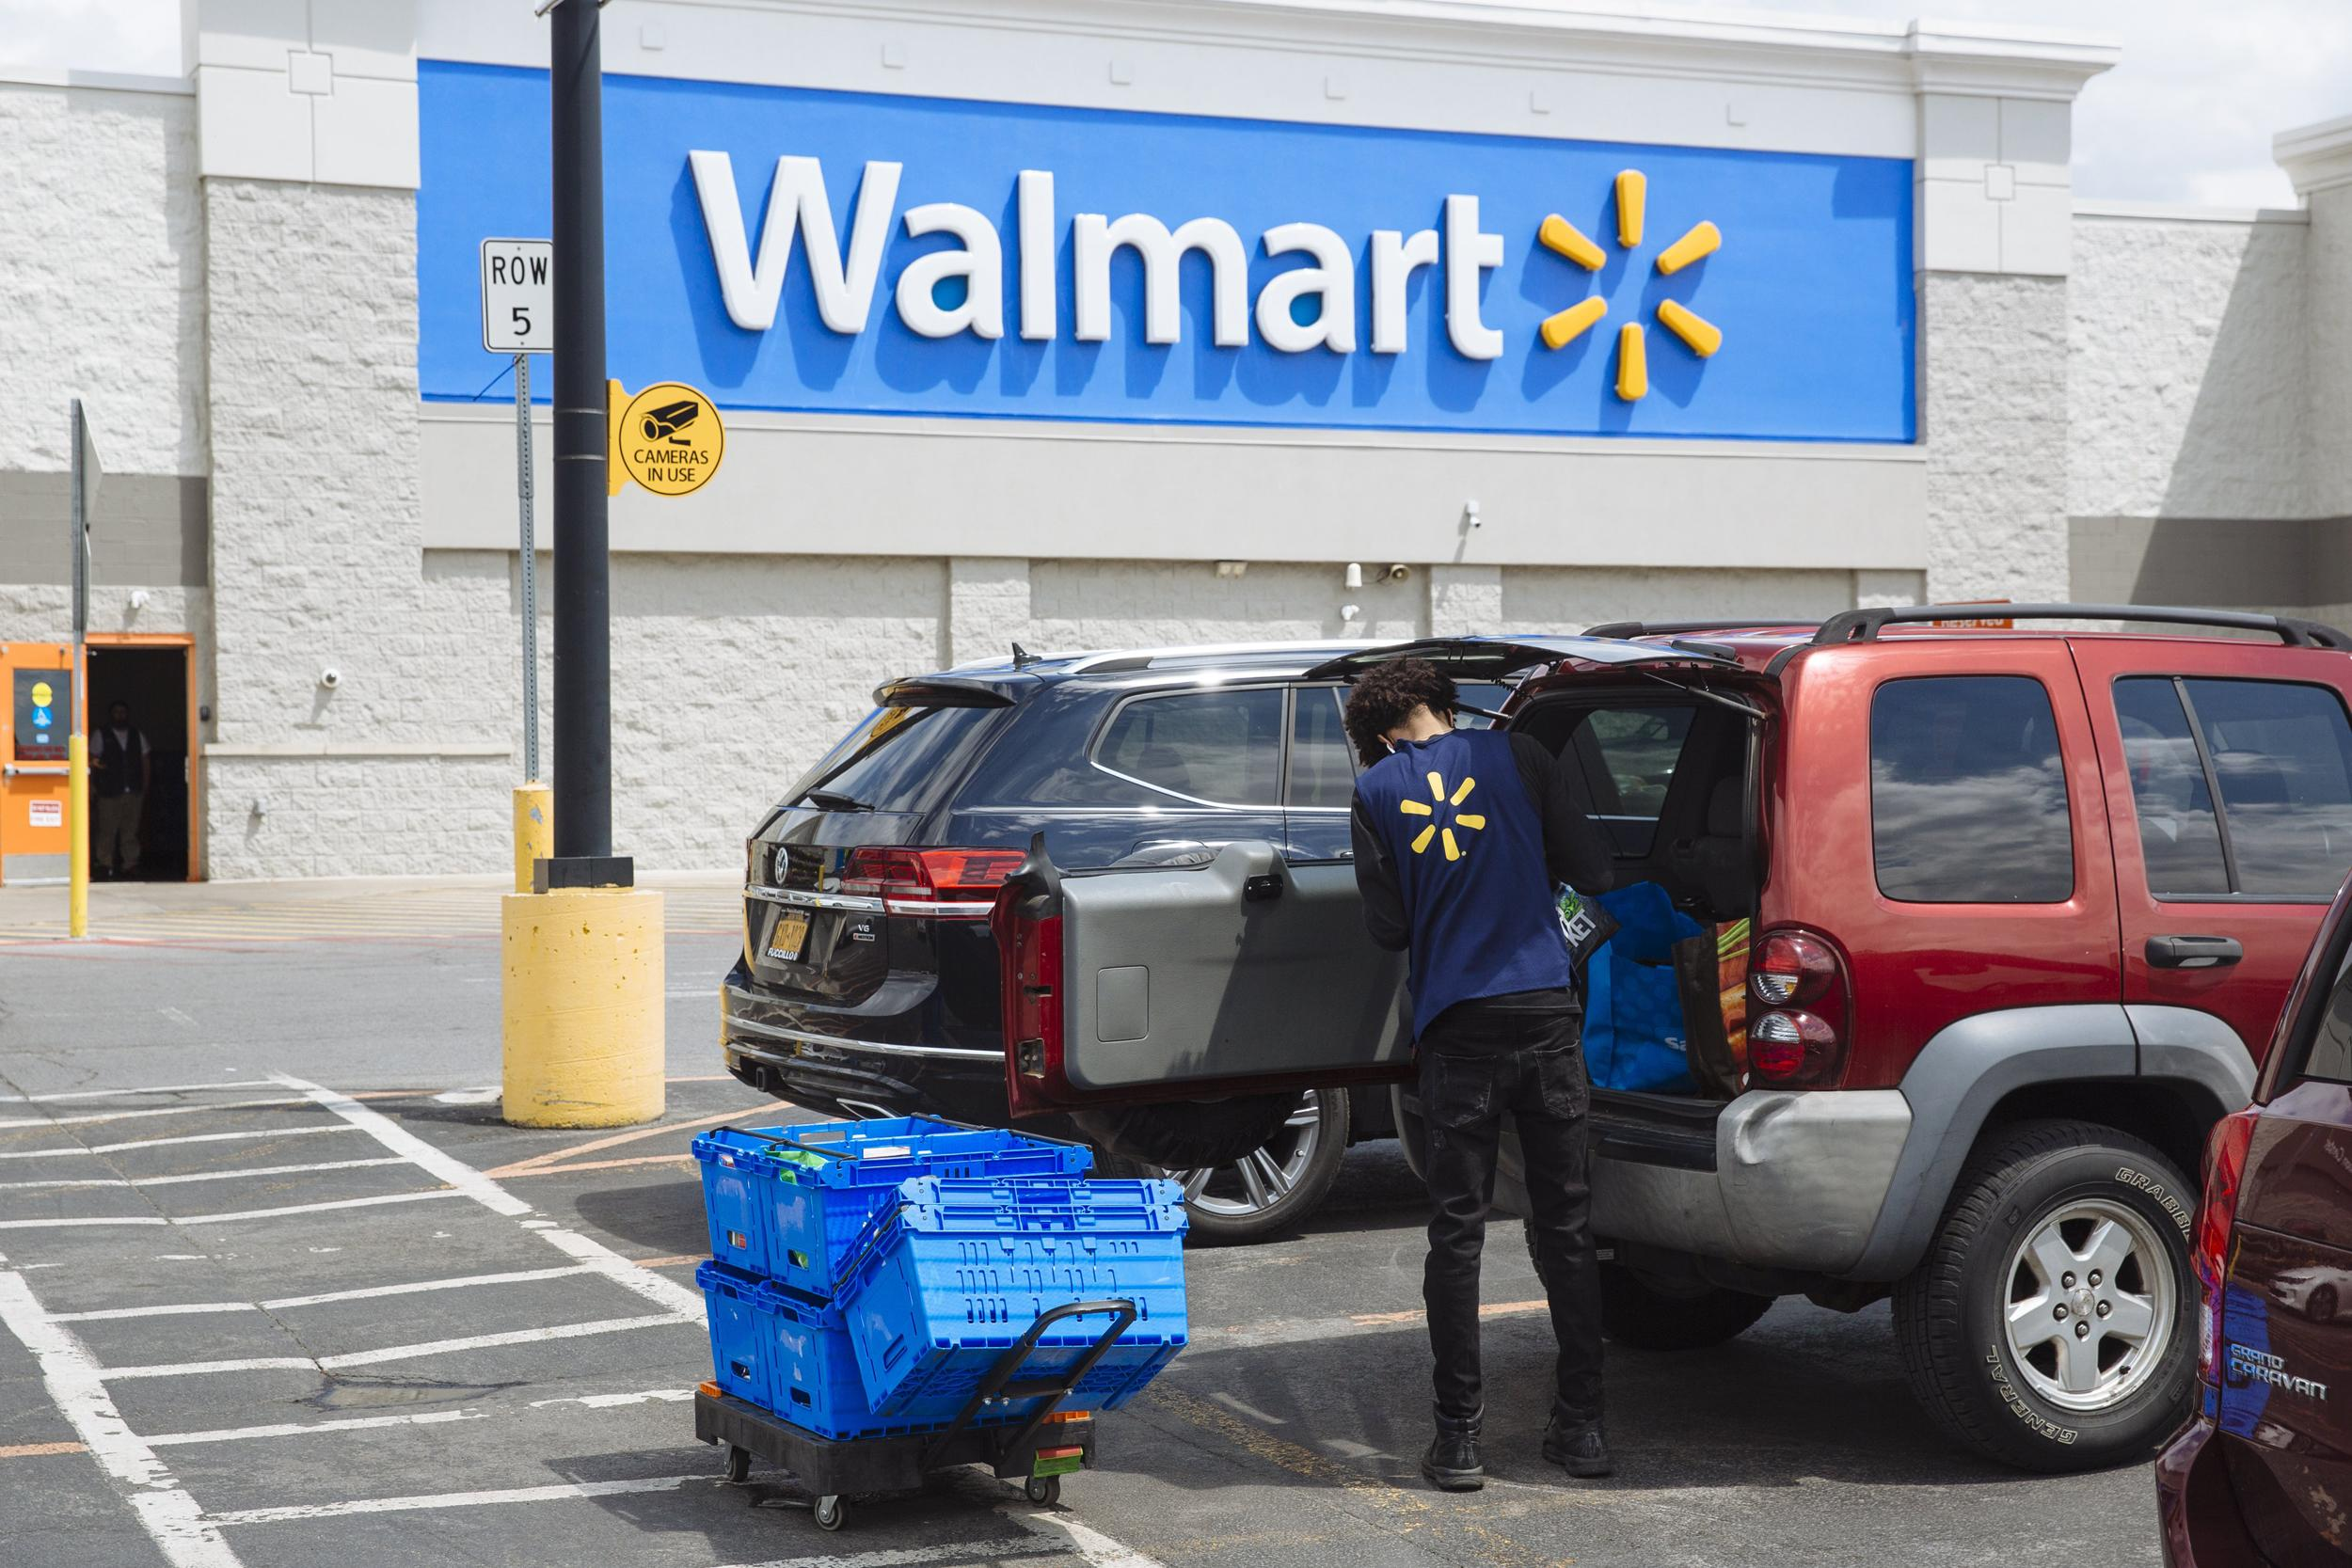 As Walmart+ prepares to launch, is it that different from Amazon Prime?